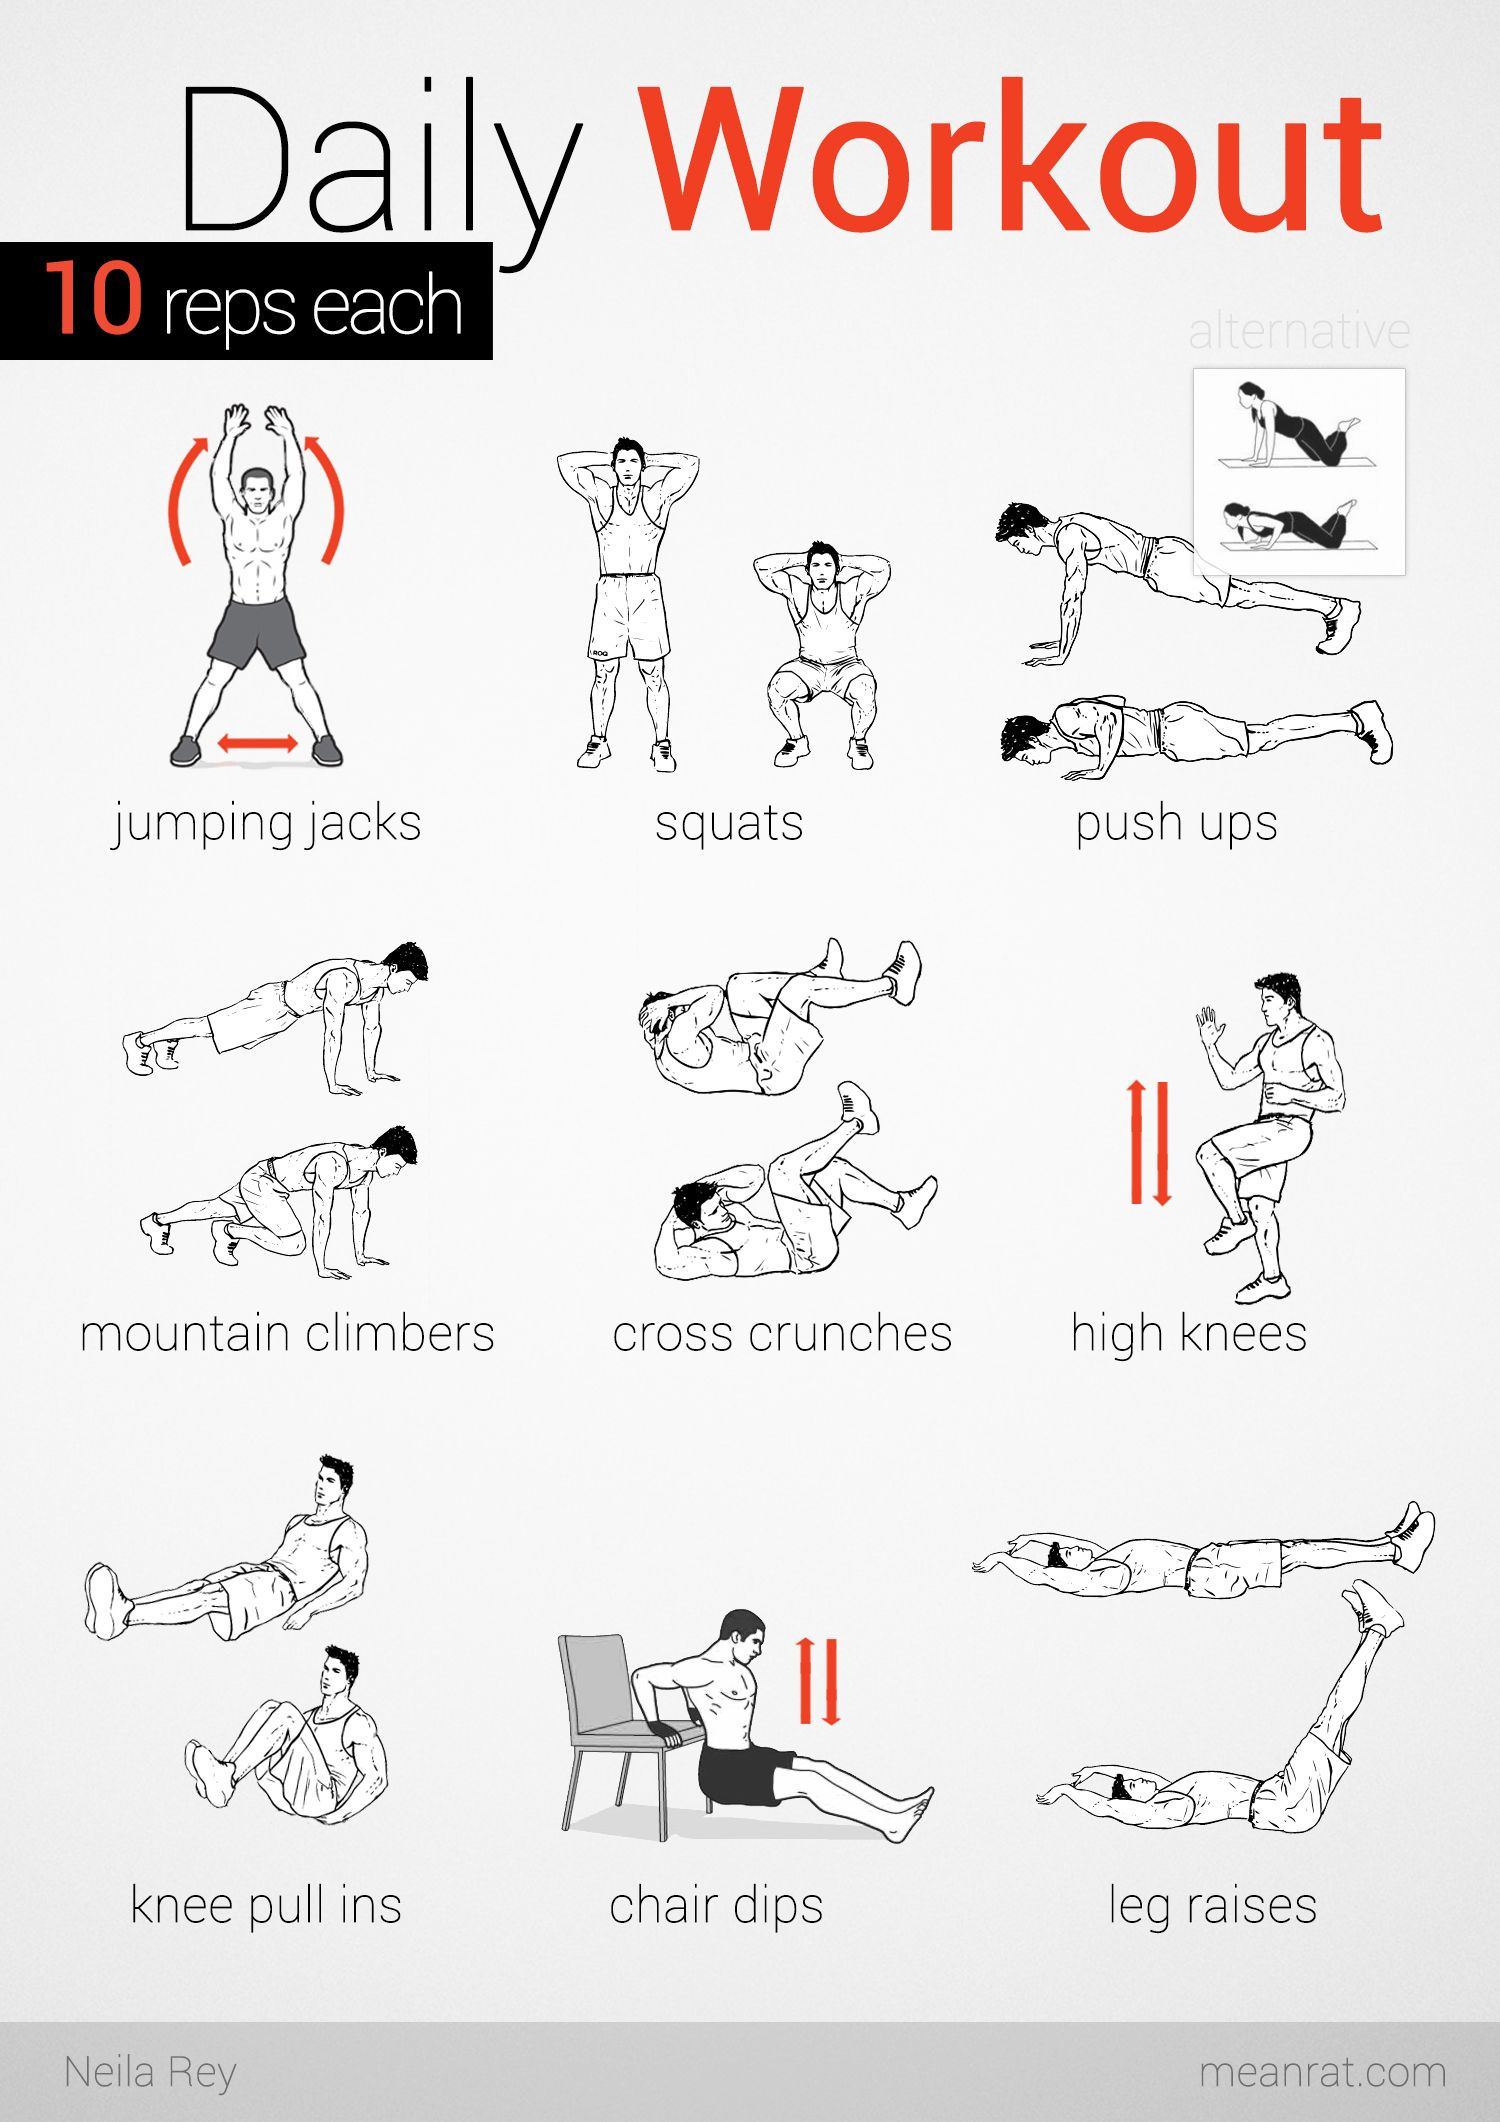 Easy Daily Workout. (9 exercises) * (10 reps each) = 90 reps It is a  perfect workout to start & end the day.